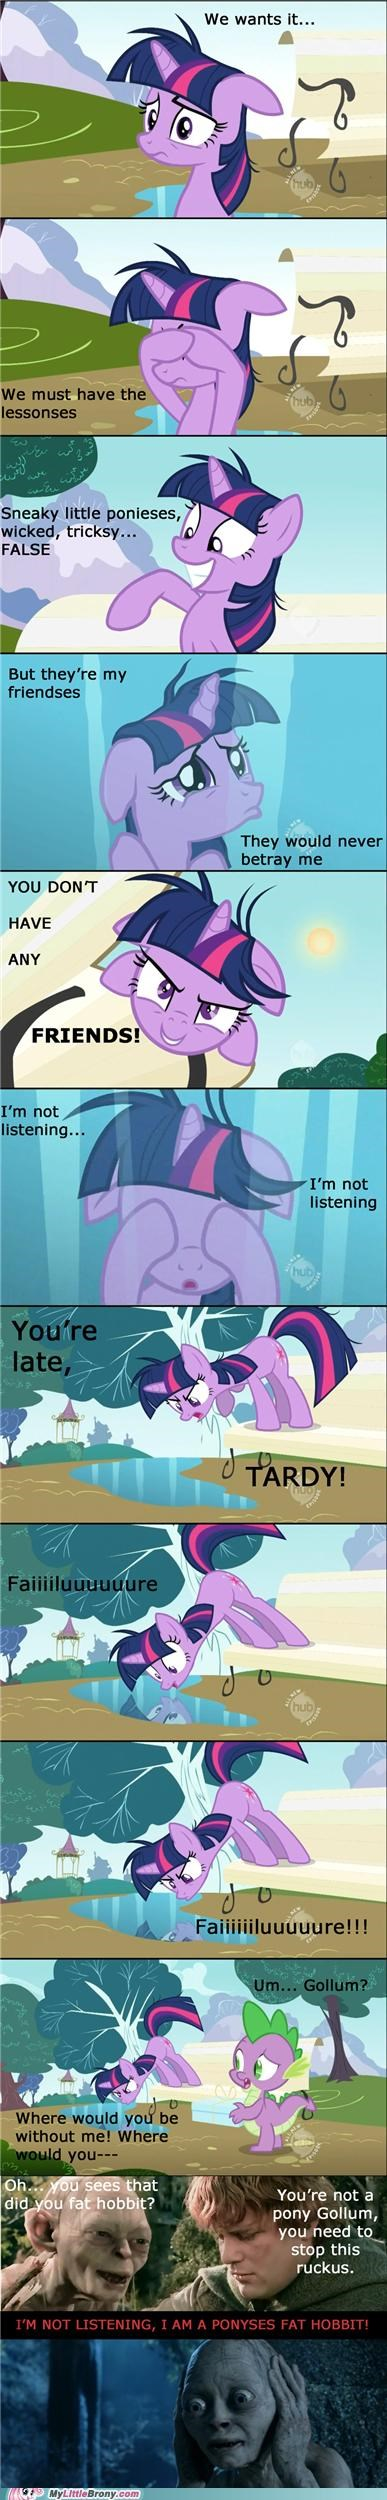 best of week comic comics gollum im not listening Lord of the Rings ponies twilight sparkle - 5315508224